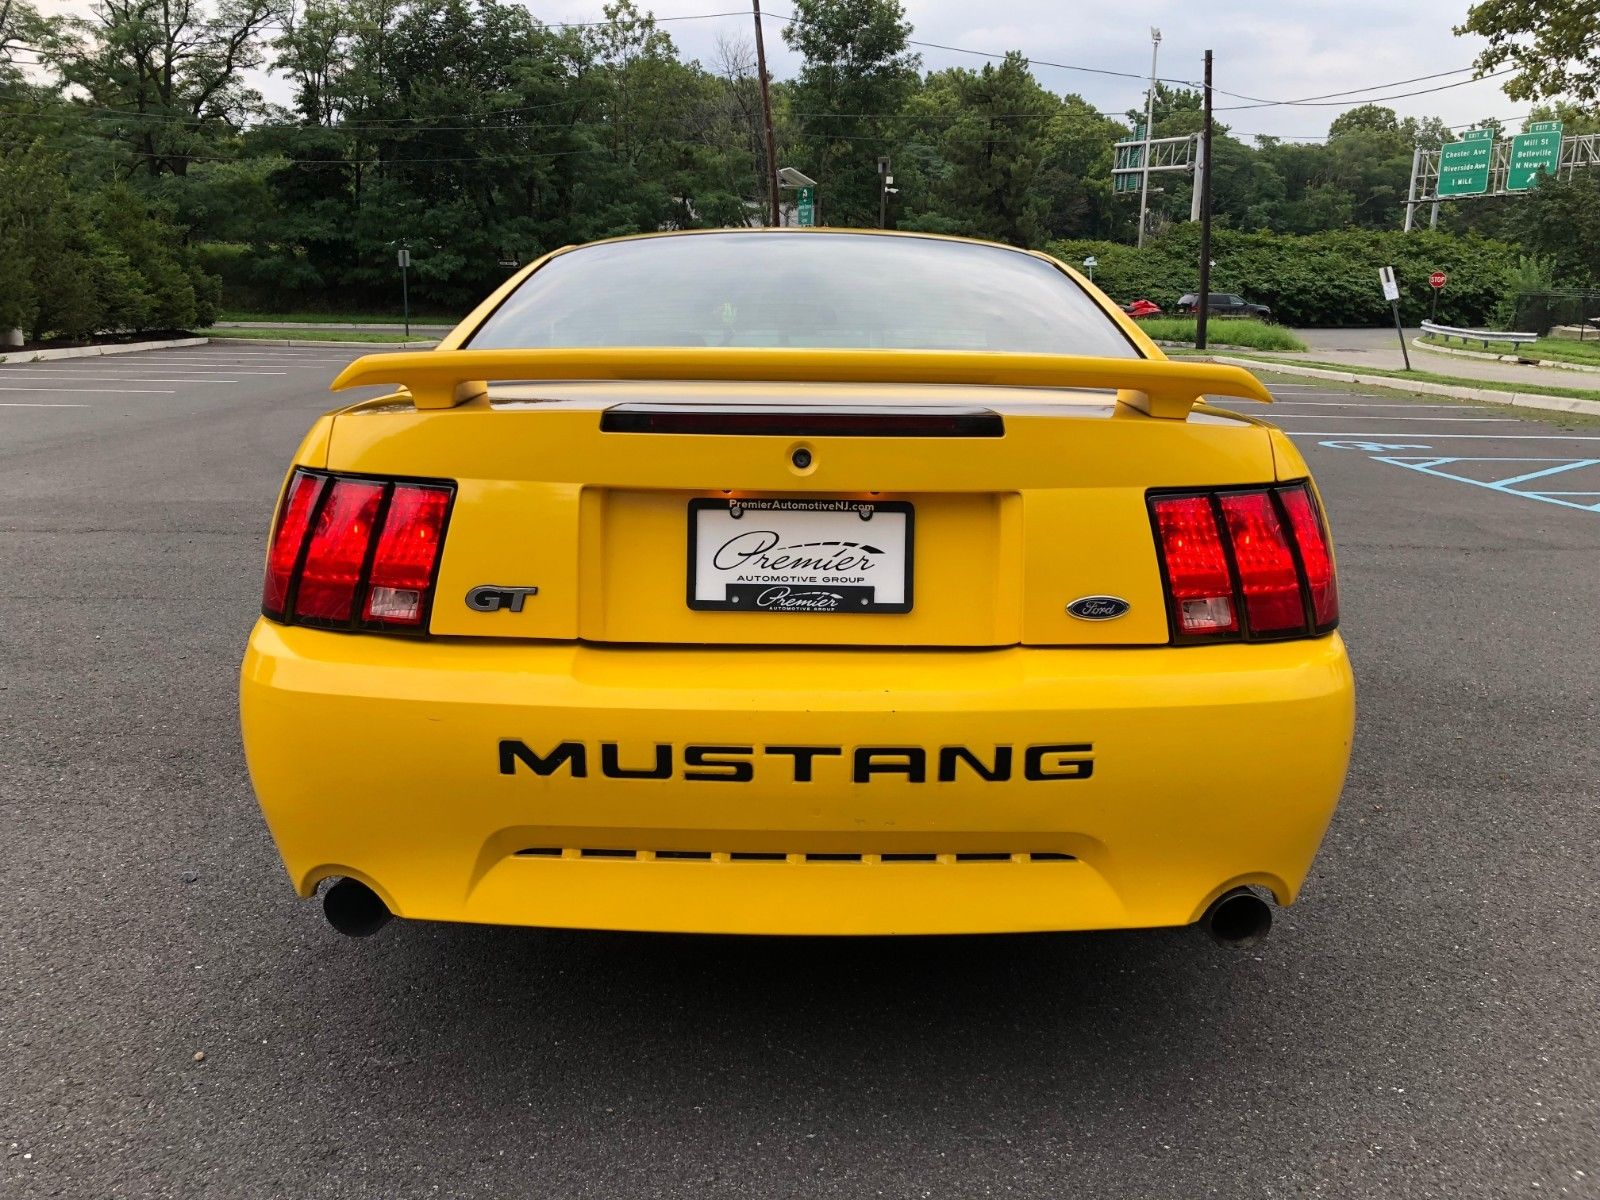 Amazing 2004 Ford Mustang GT 2004 Ford Mustang GT 4 6L V8 5-speed  (Screaming Yellow) Headers / Exhaust 2018-2019